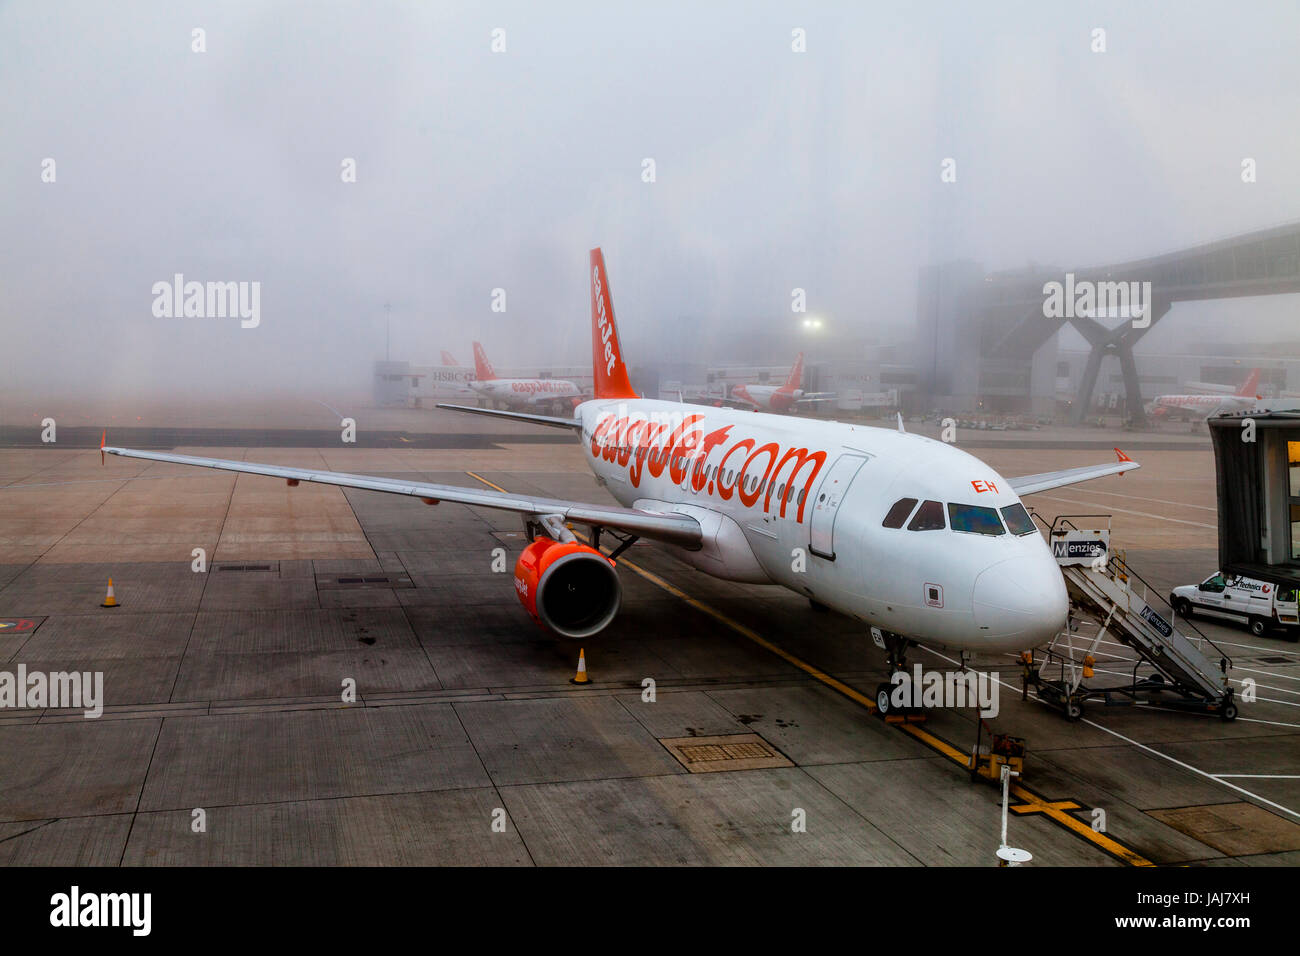 A Easy Jet Plane On The Ground In The Fog At London Gatwick Airport, West Sussex, UK - Stock Image